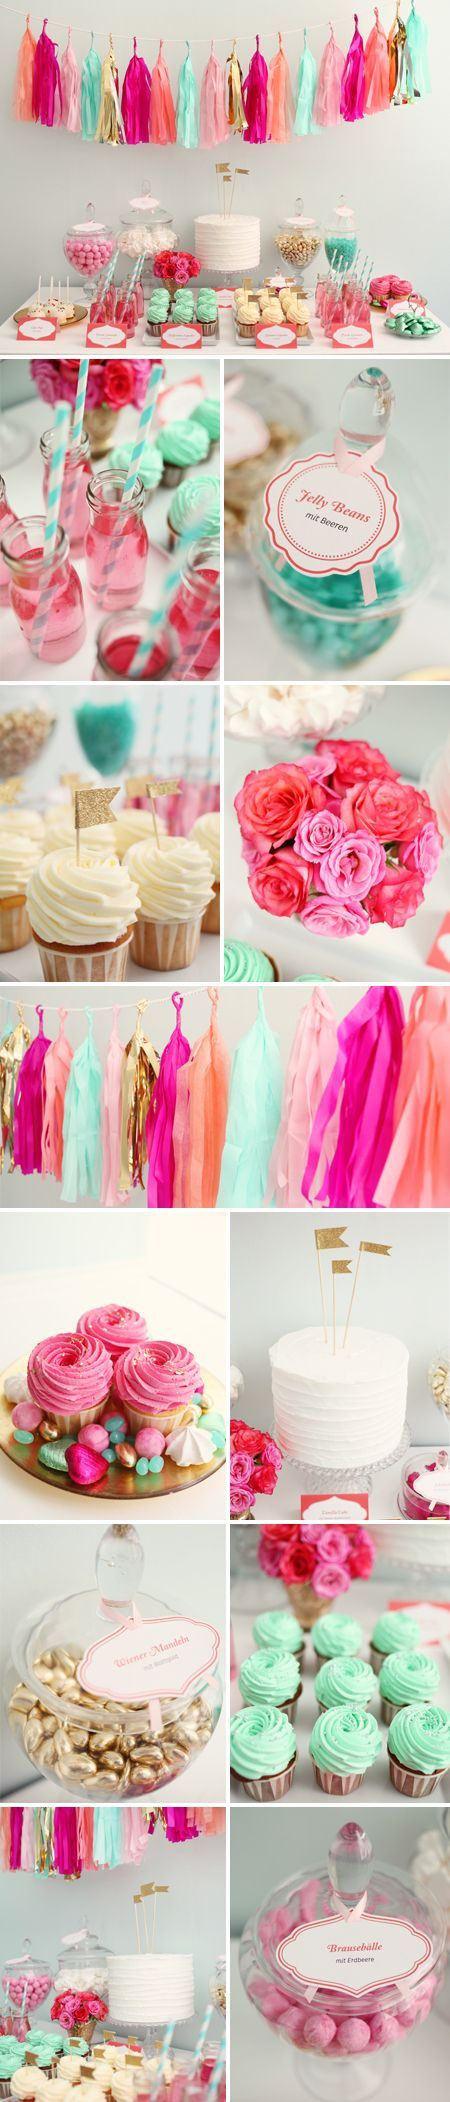 Gorgeous colorful dessert table